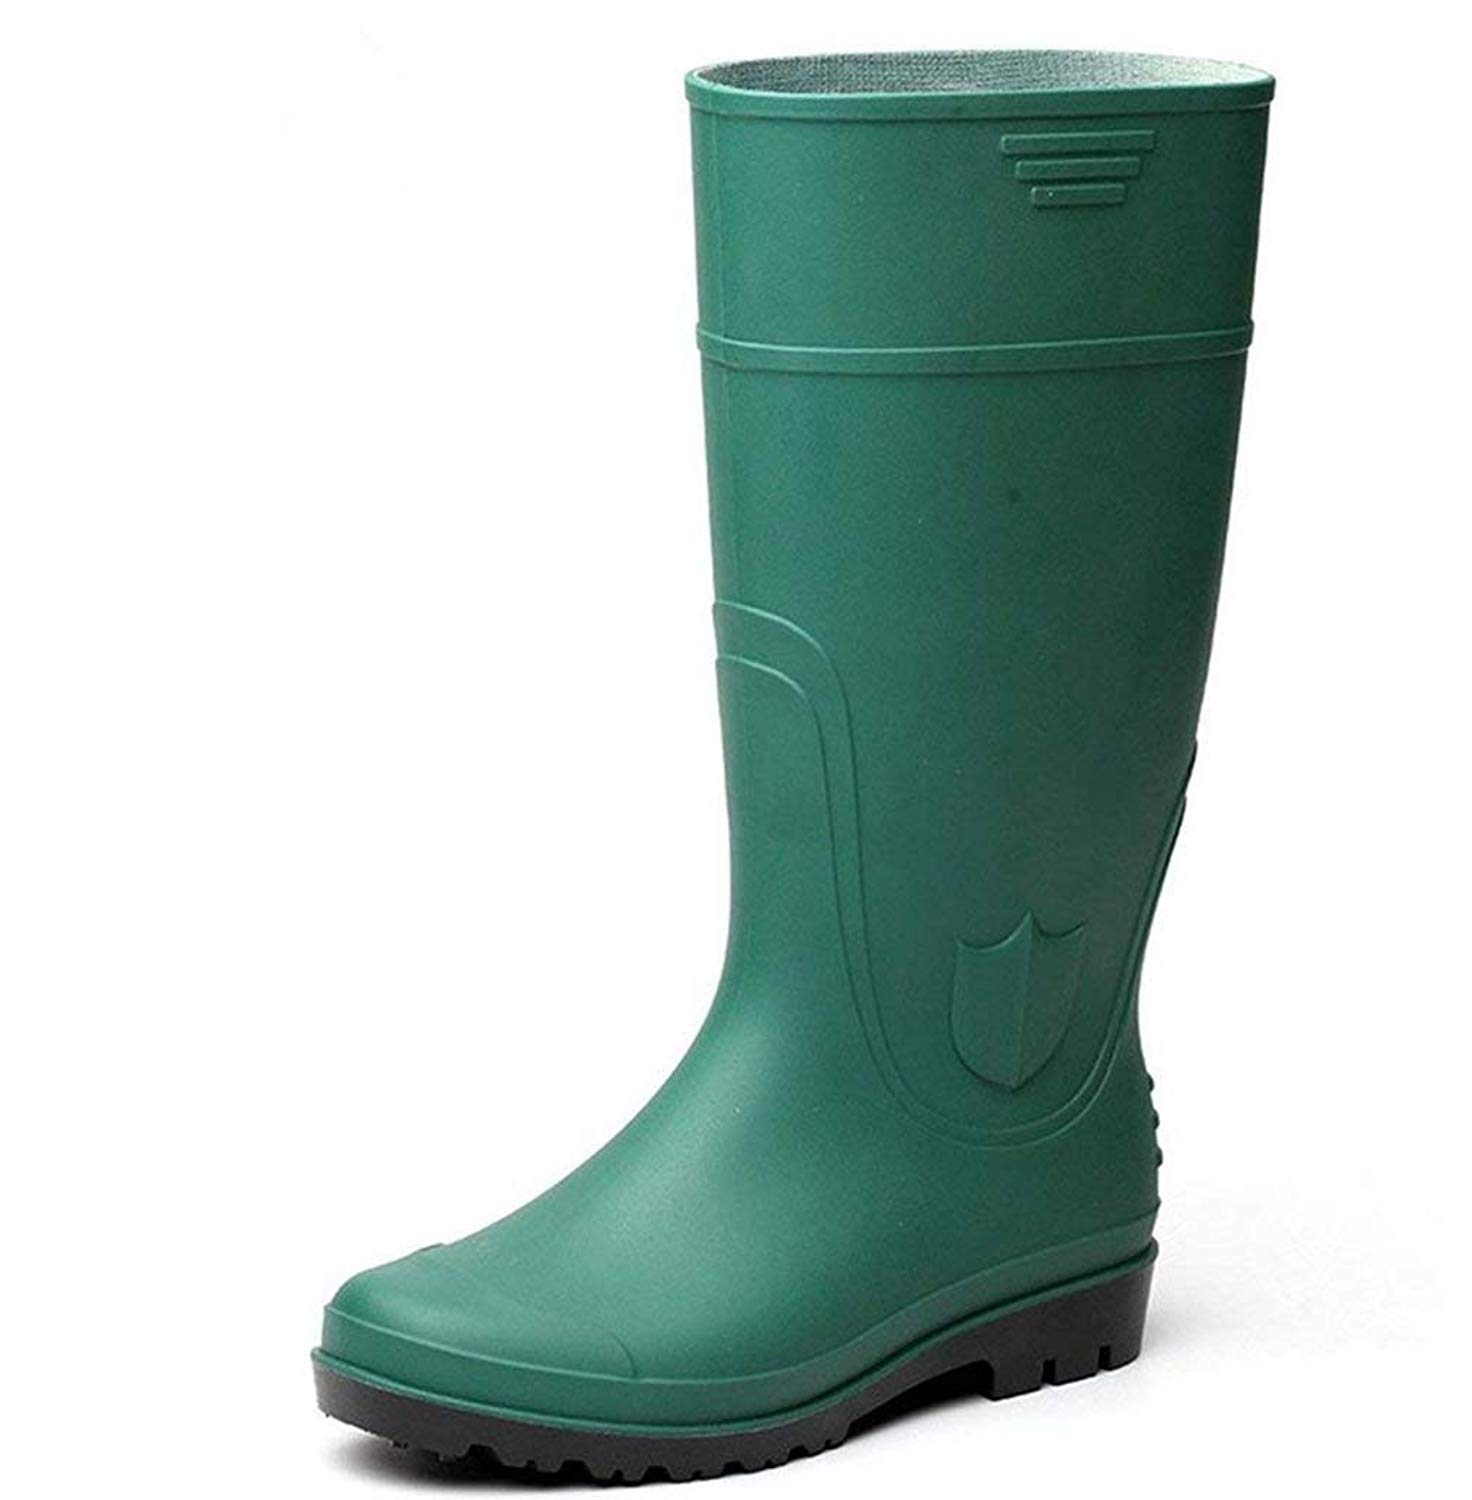 Green George Yellow Rainboots Halloween Cosplay Costumes for Adult Kids